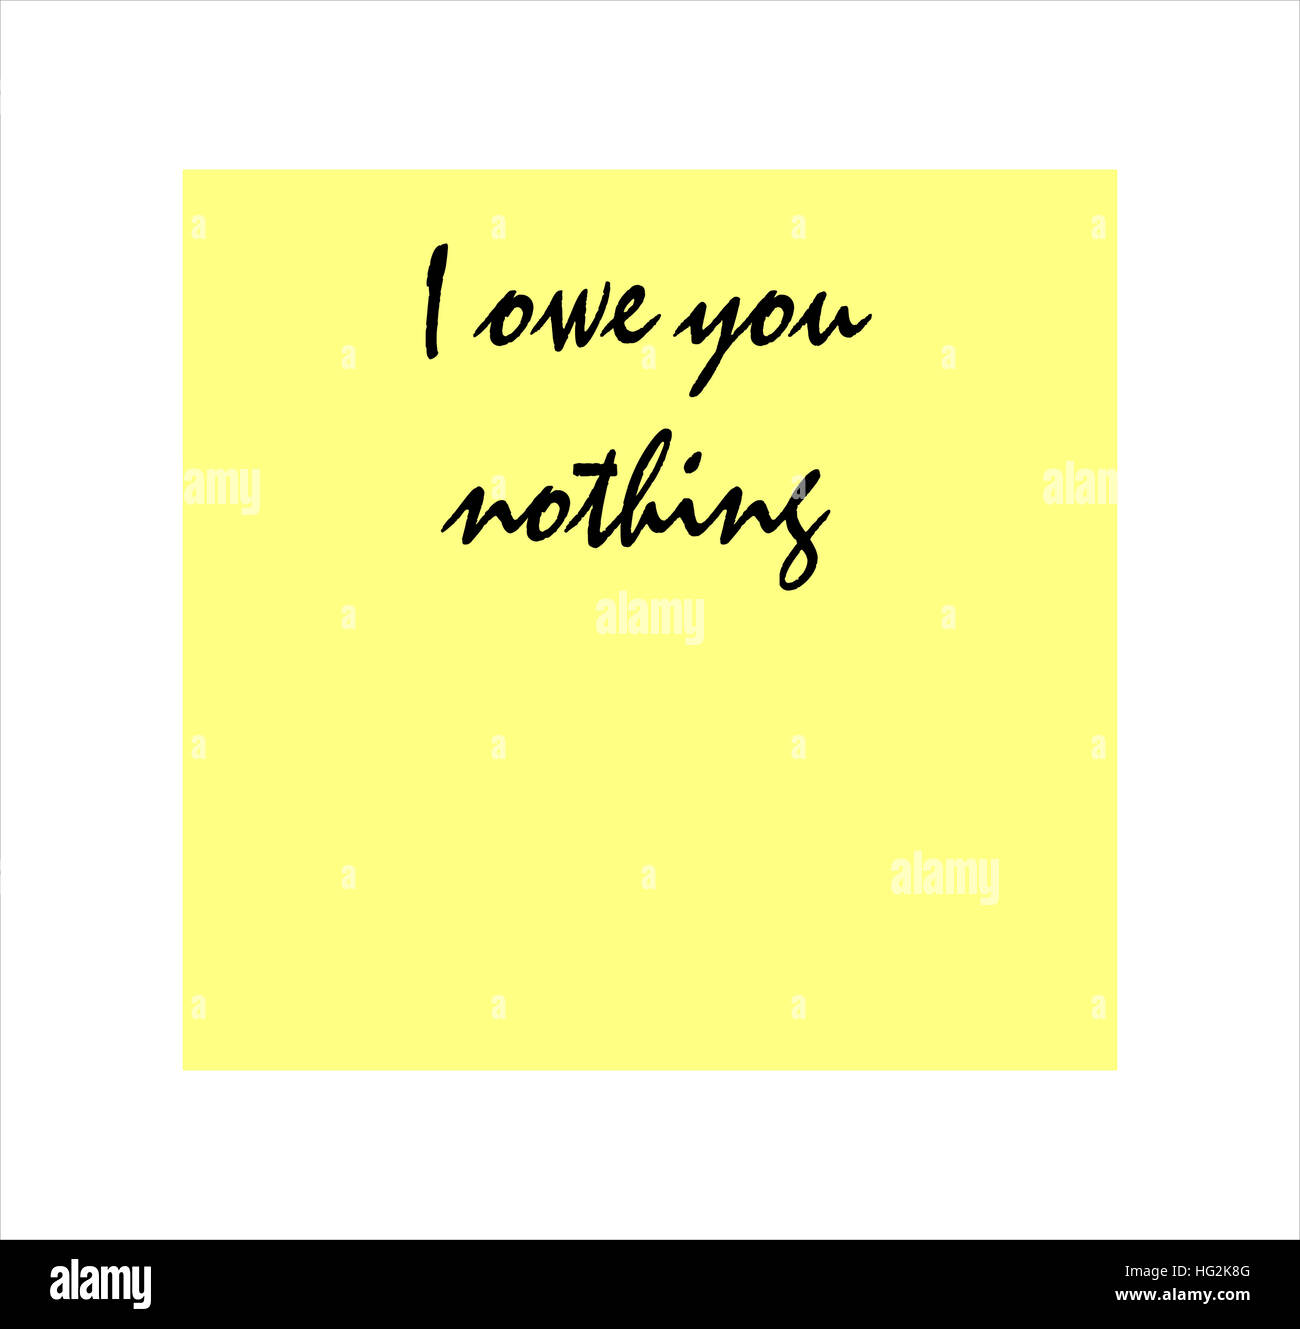 I owe you nothing message on yellow post it sticker - Stock Image